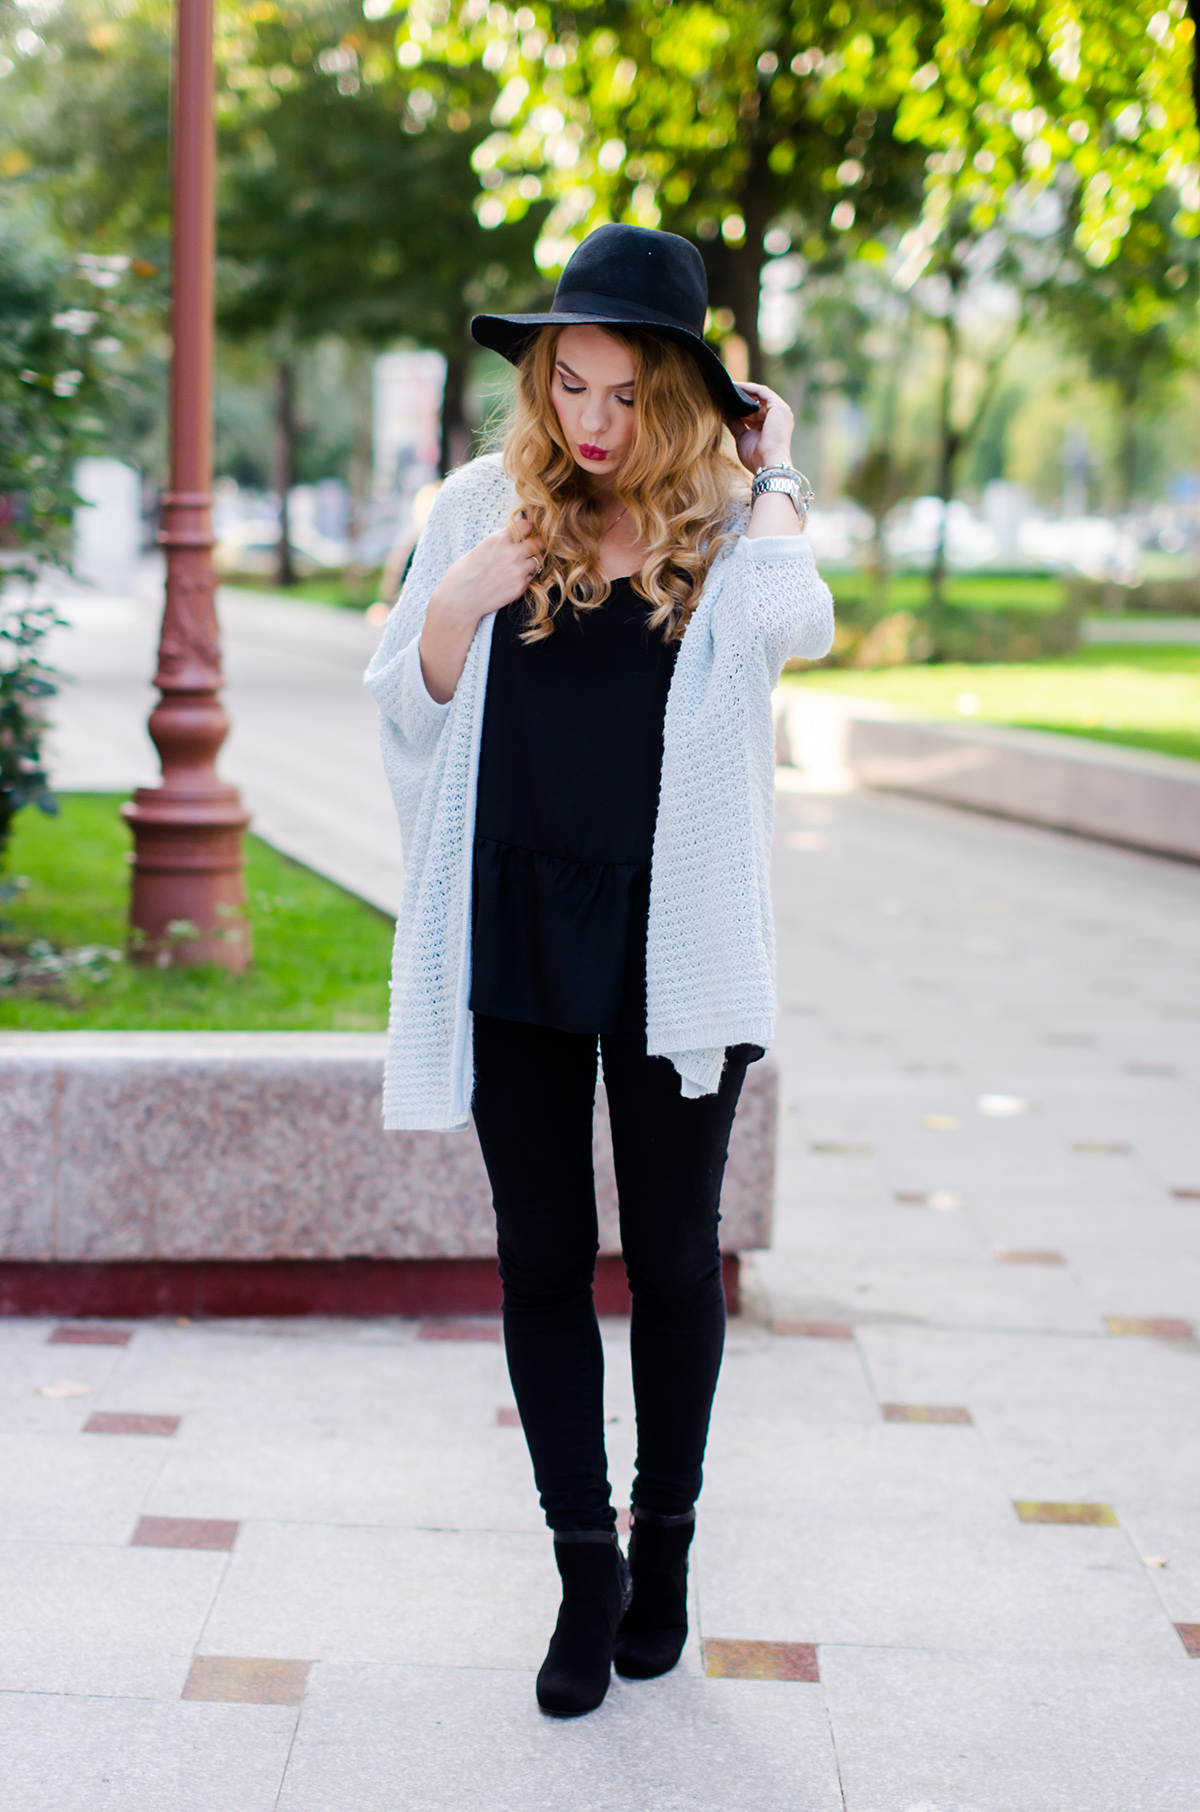 vero-moda-blue-fluffy-cardigan-black-outfit-hat-curls (1)